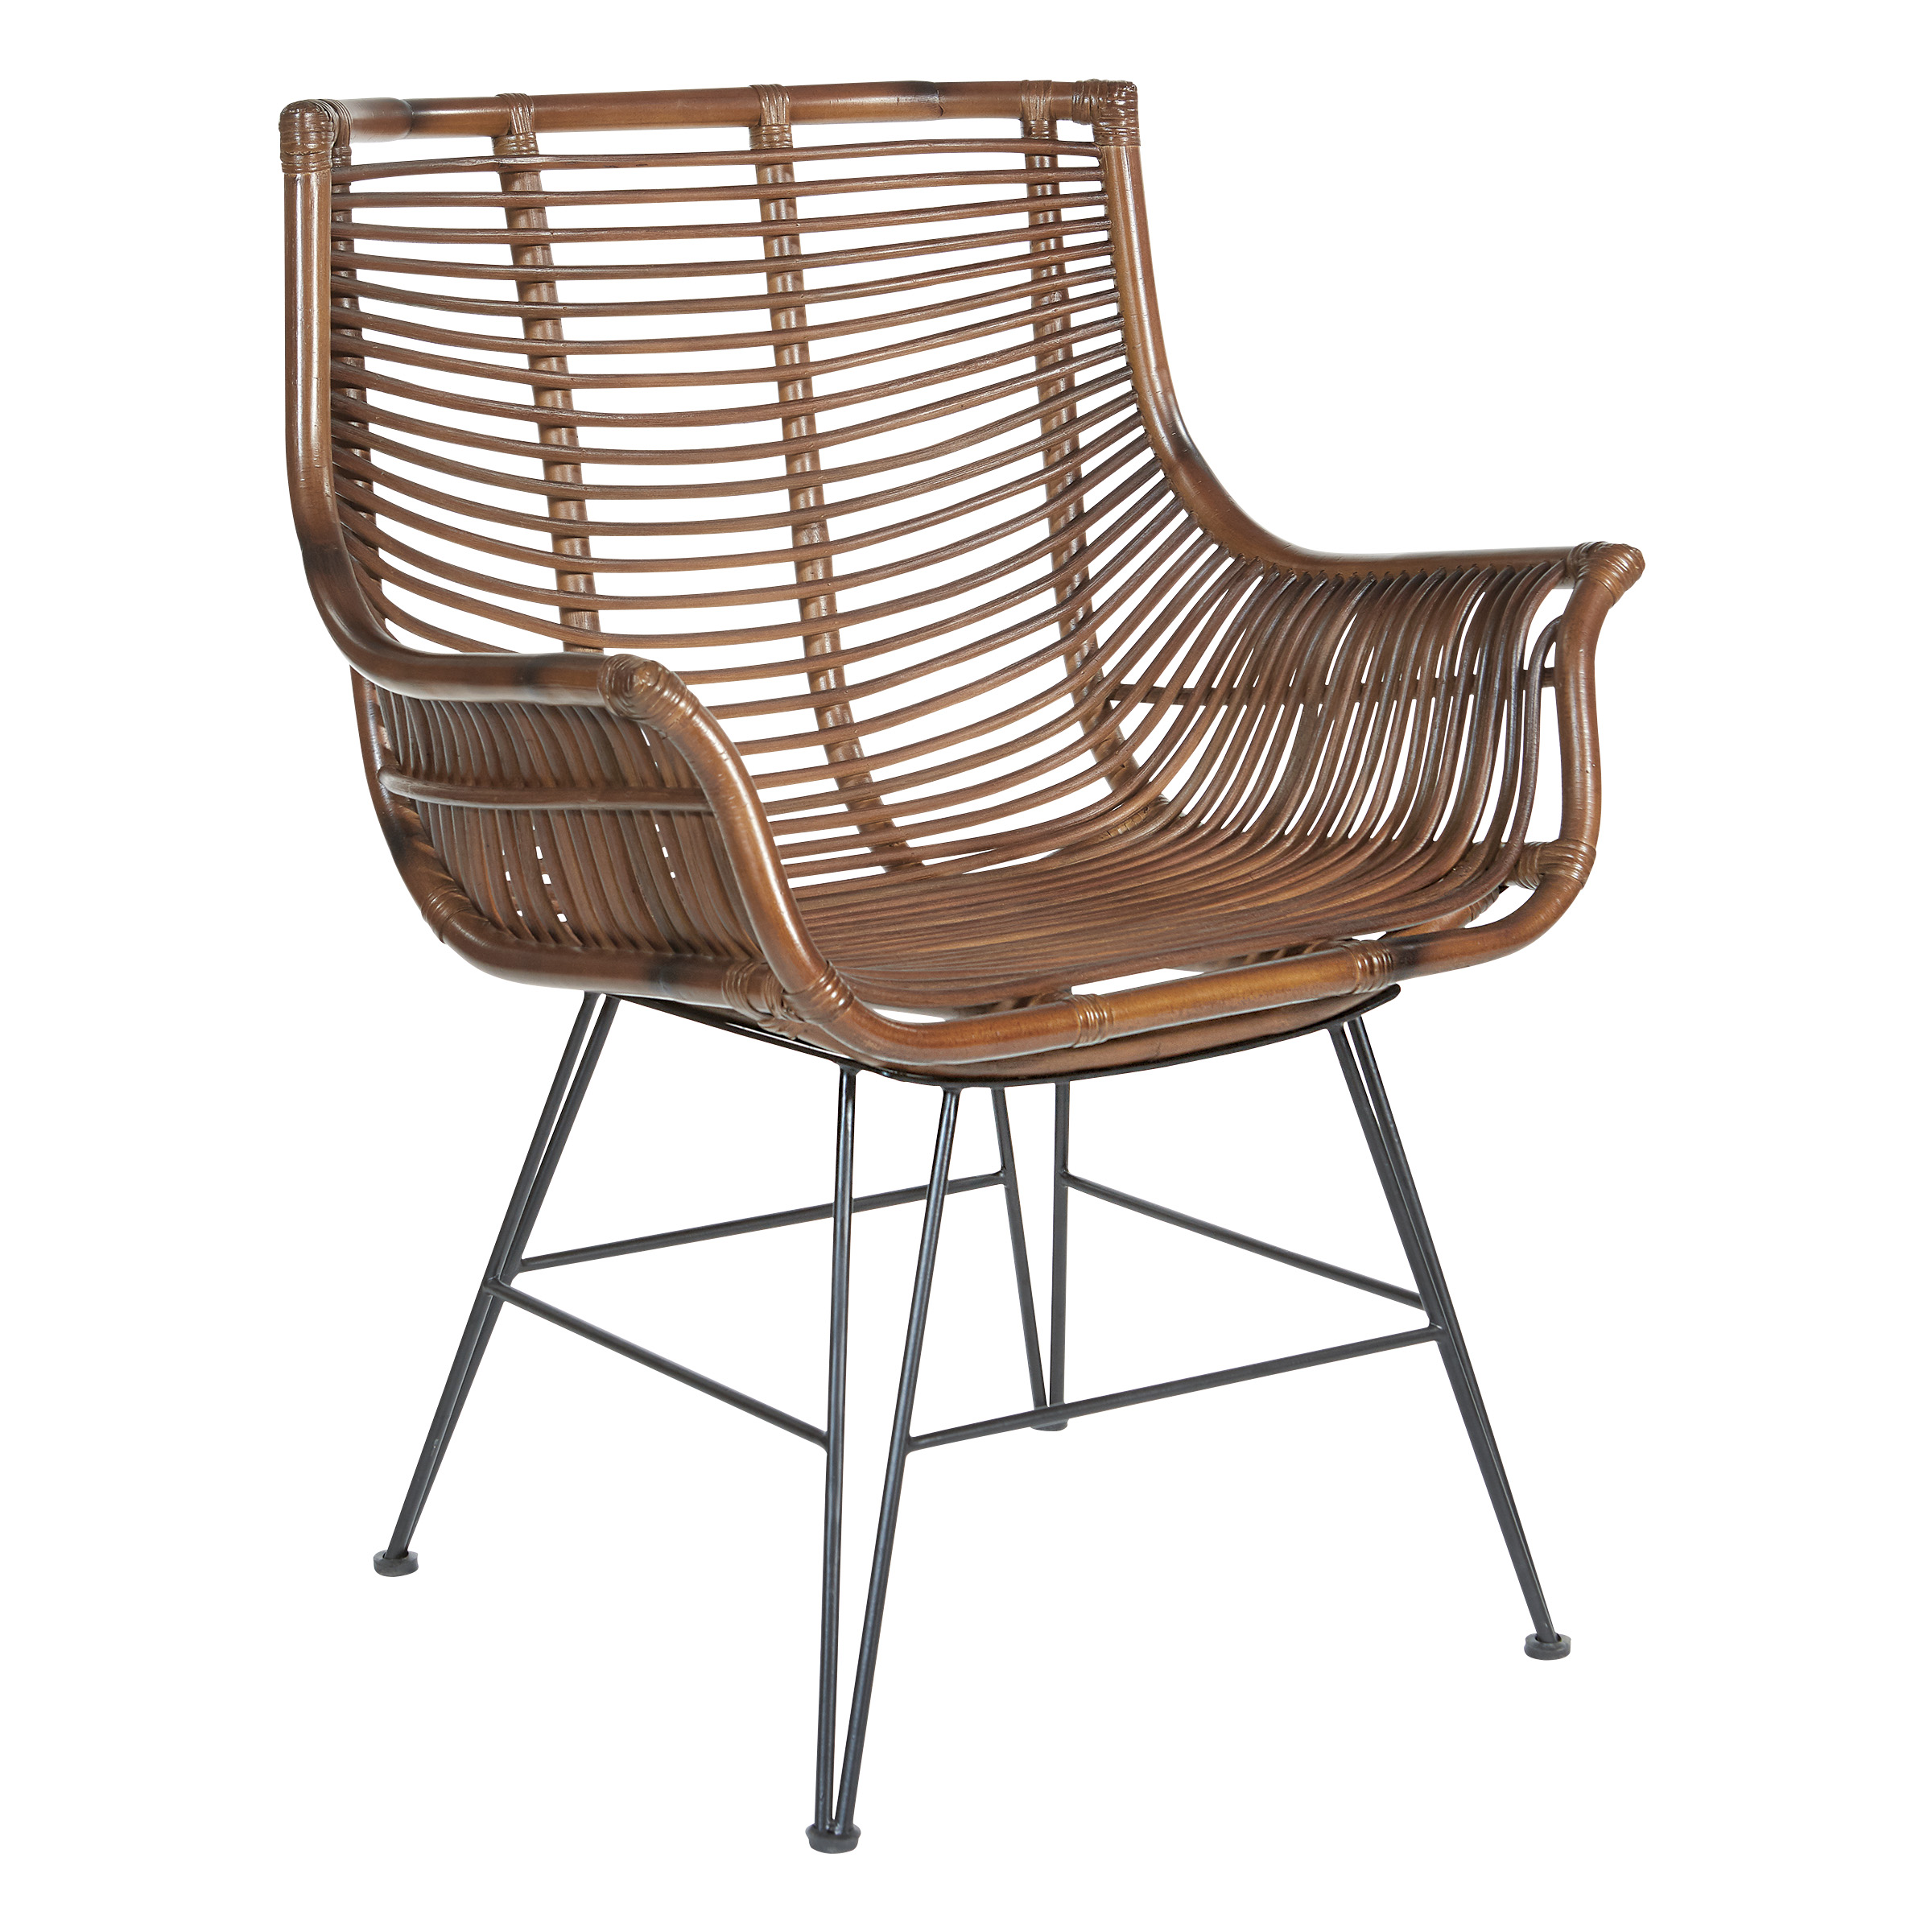 Brown rattan chair with metal legs